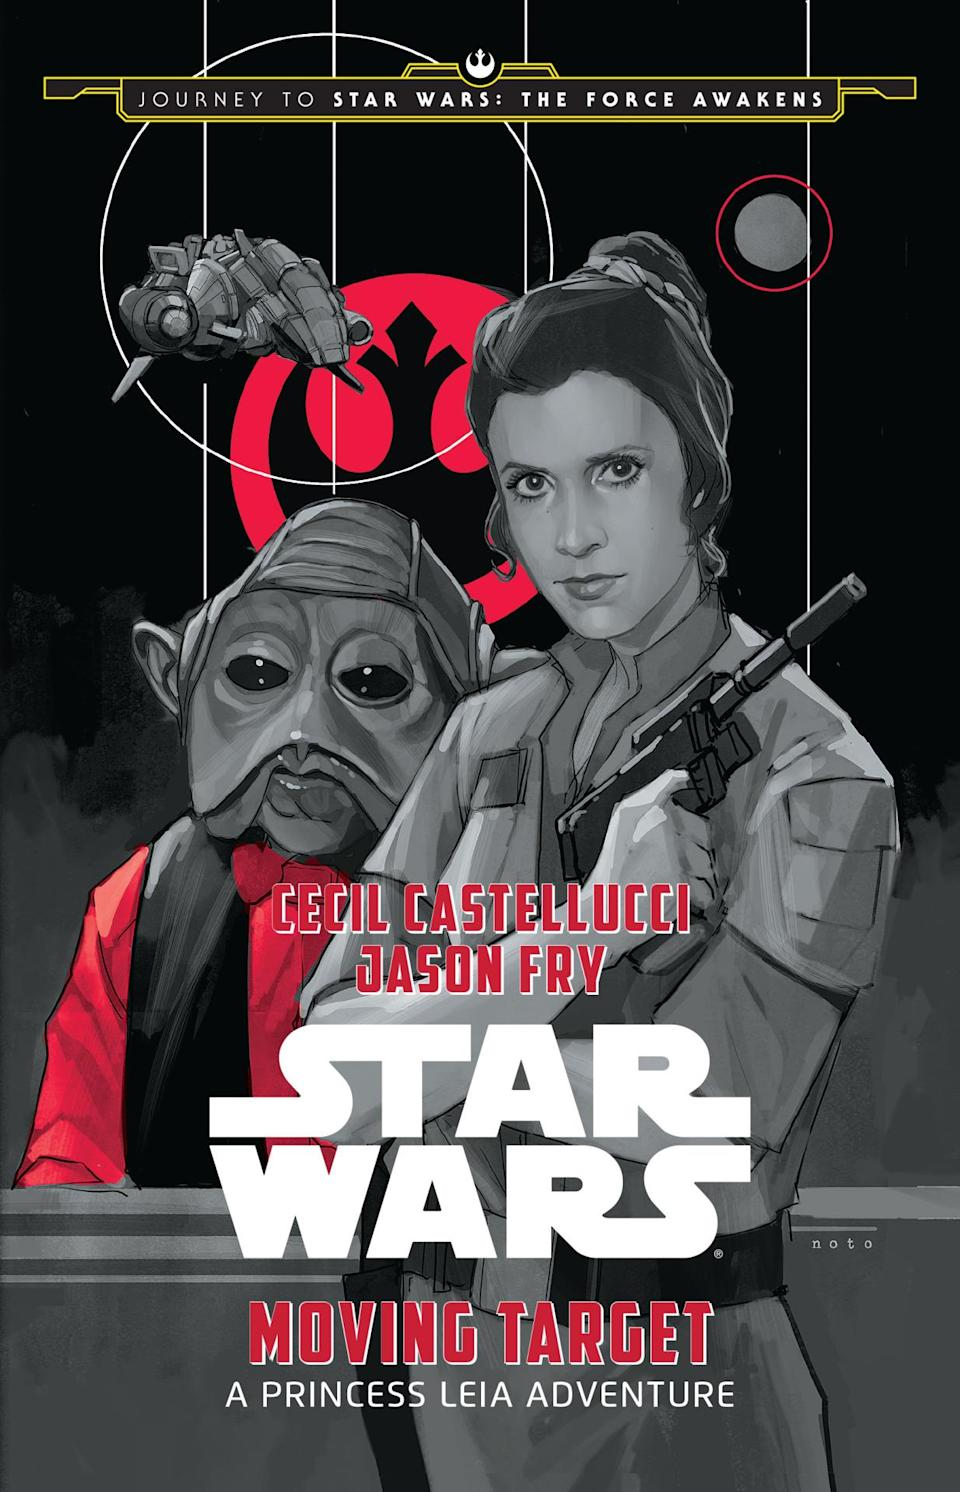 <p>'Moving Target' is a new, illustrated book for kids that's set between 'The Empire Strikes Back' and 'Return of the Jedi.' It follows Princess Leia as she leads a ragtag group of rebels on a treacherous decoy mission against the evil Galactic Empire.</p>